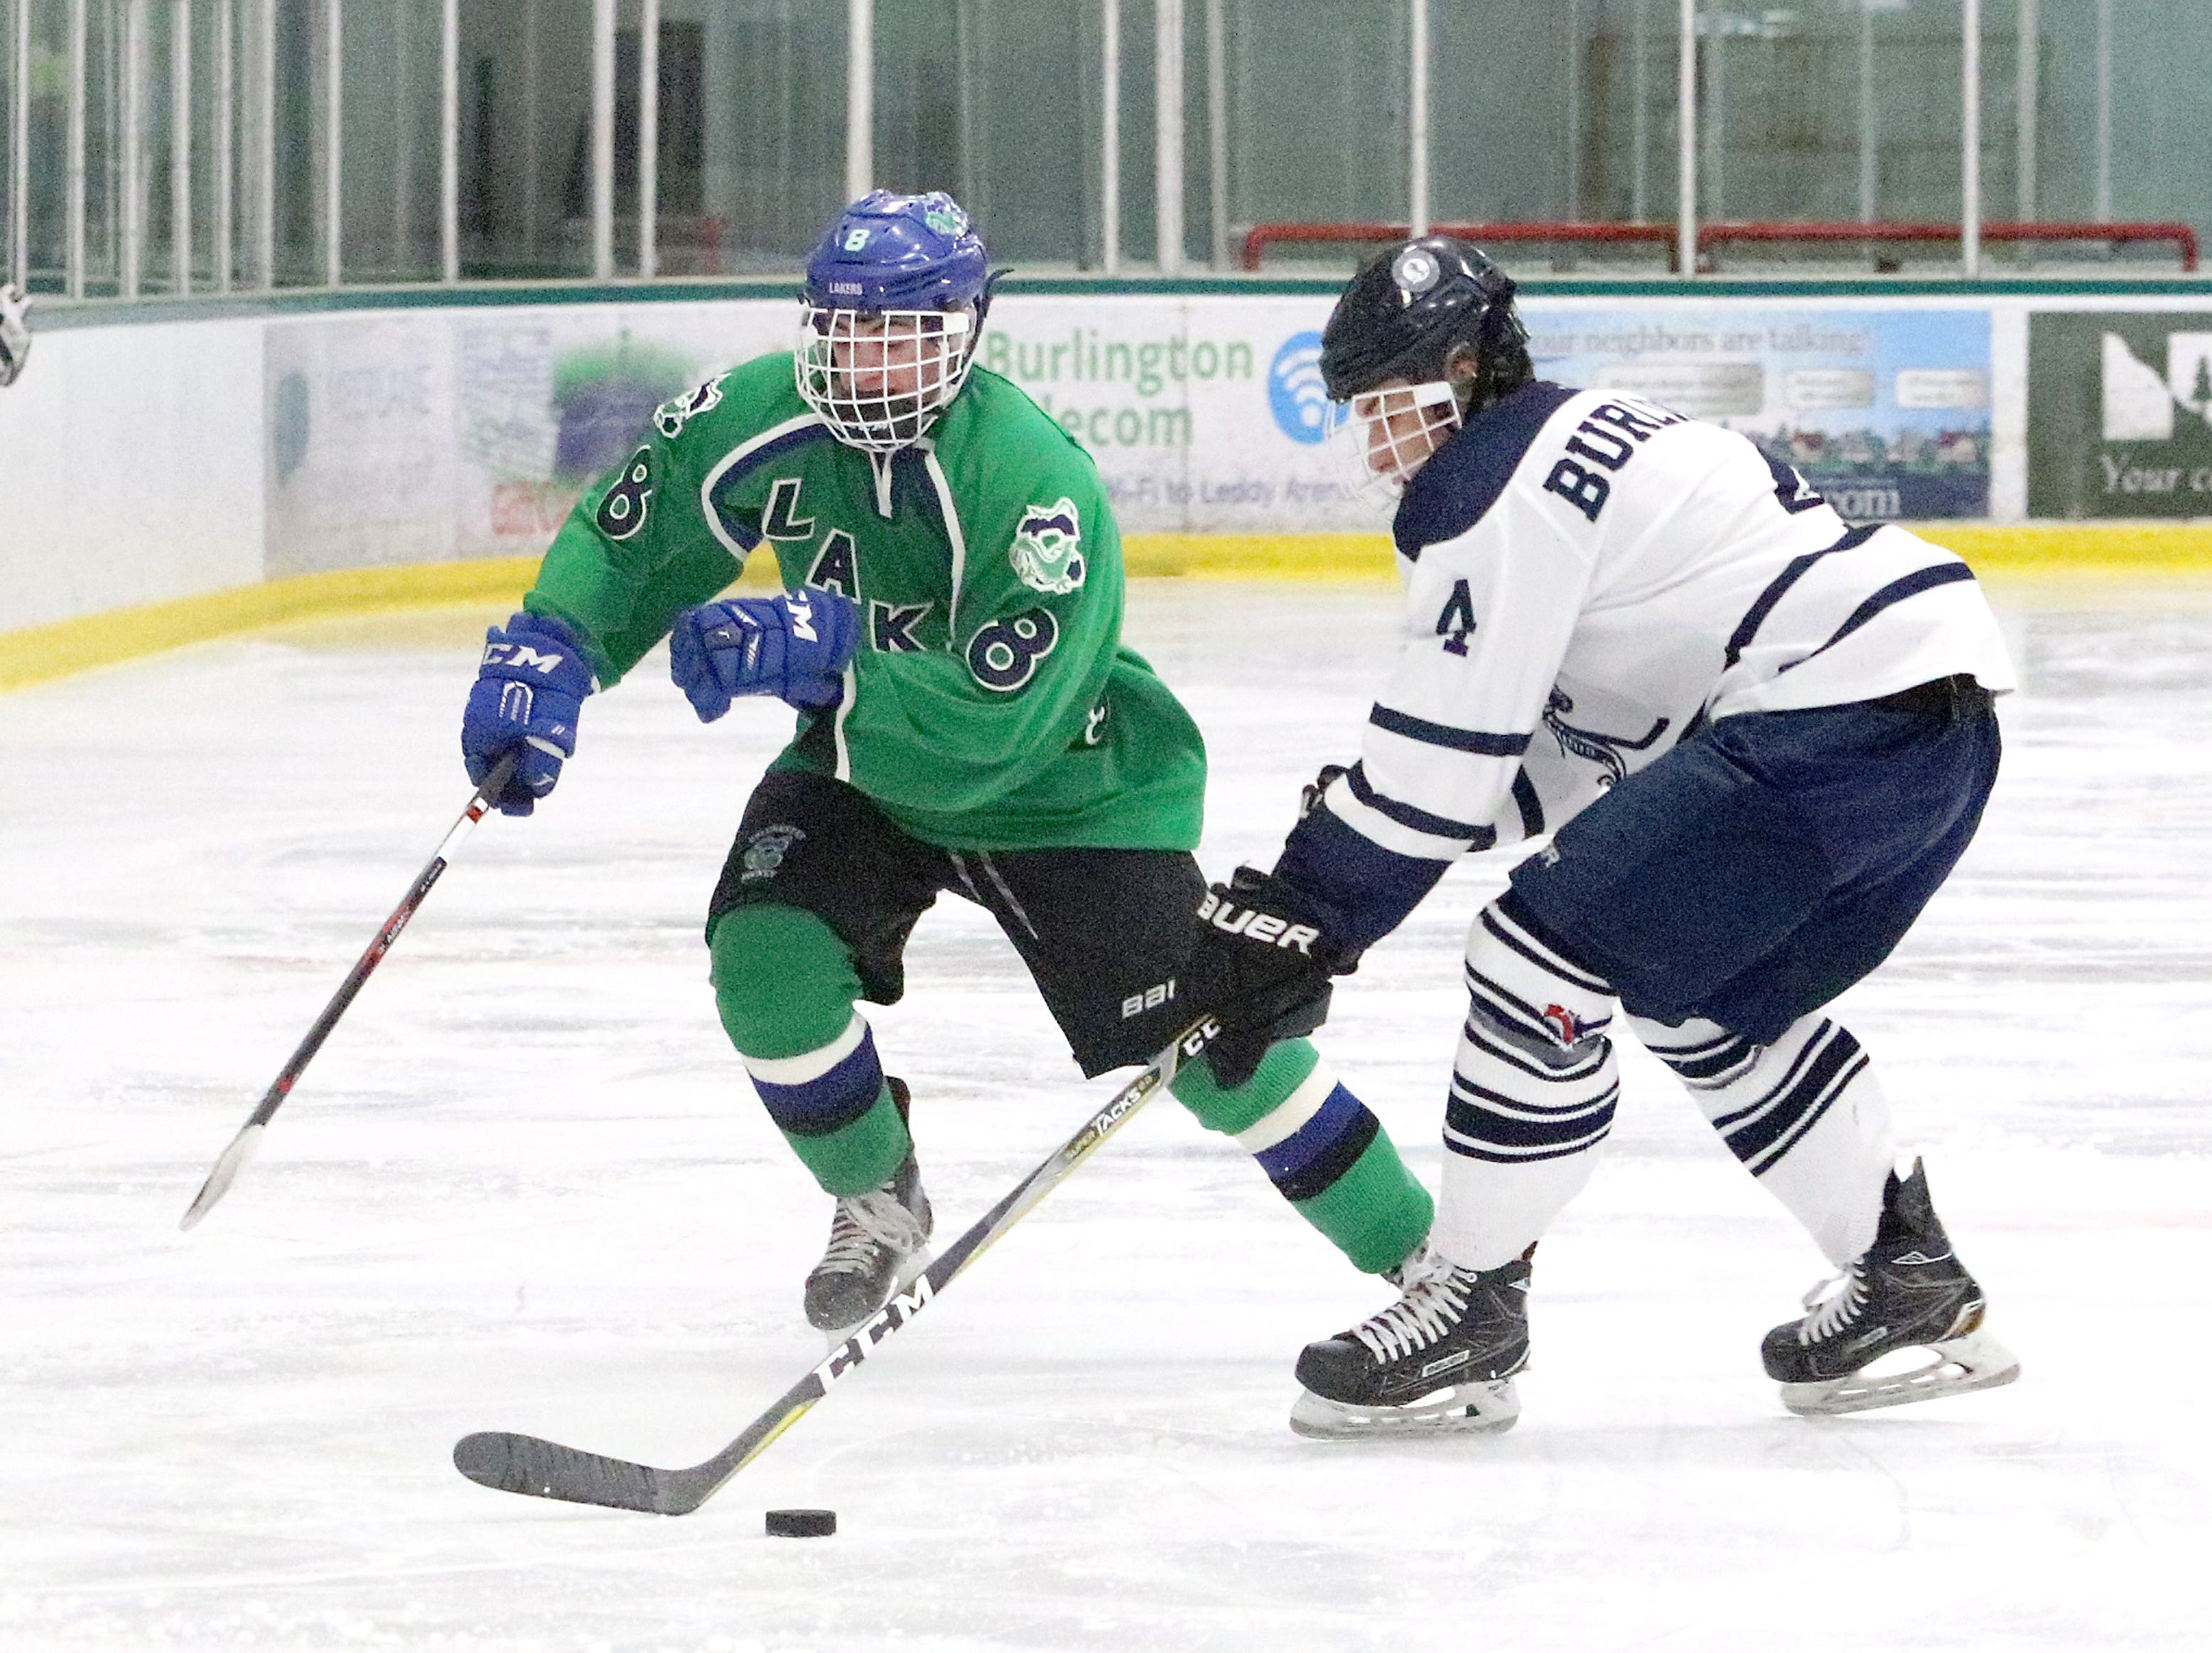 """Burlington's Colton Poulin and Colchester's Will Spencer battle for the puck during the Lakers 6-0 win on Saturday. The Lakers claimed the 2nd annual """"BAHA Cup"""" which features former BAHA teammates now playing for CHS and BHS."""